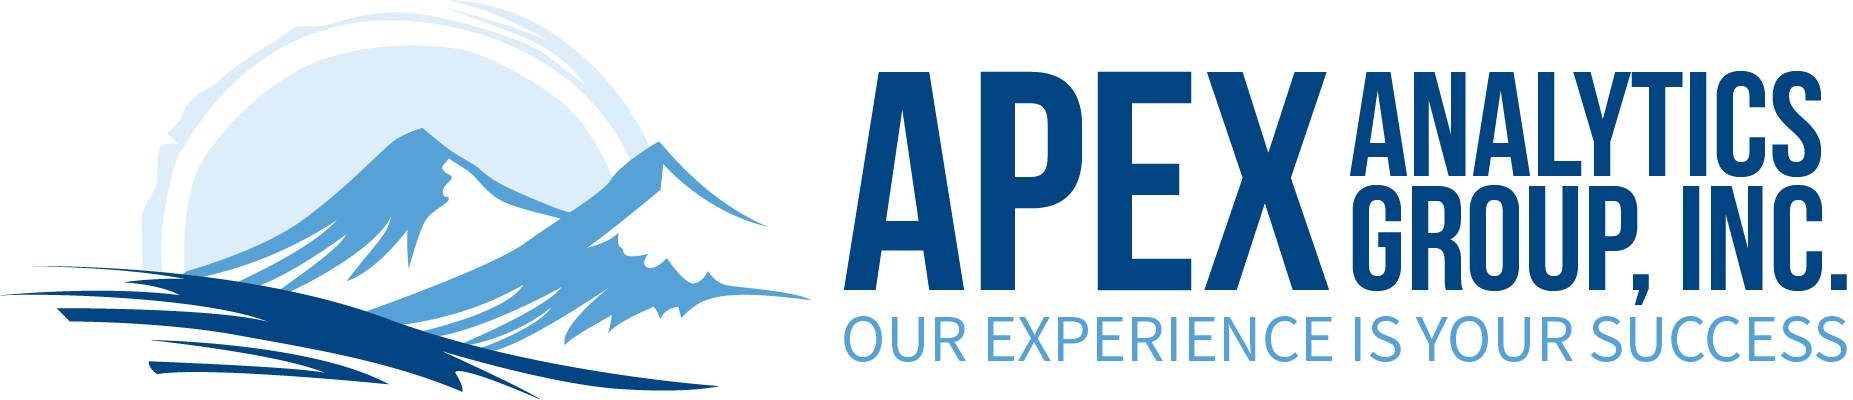 APEX Analytics Group, Inc.